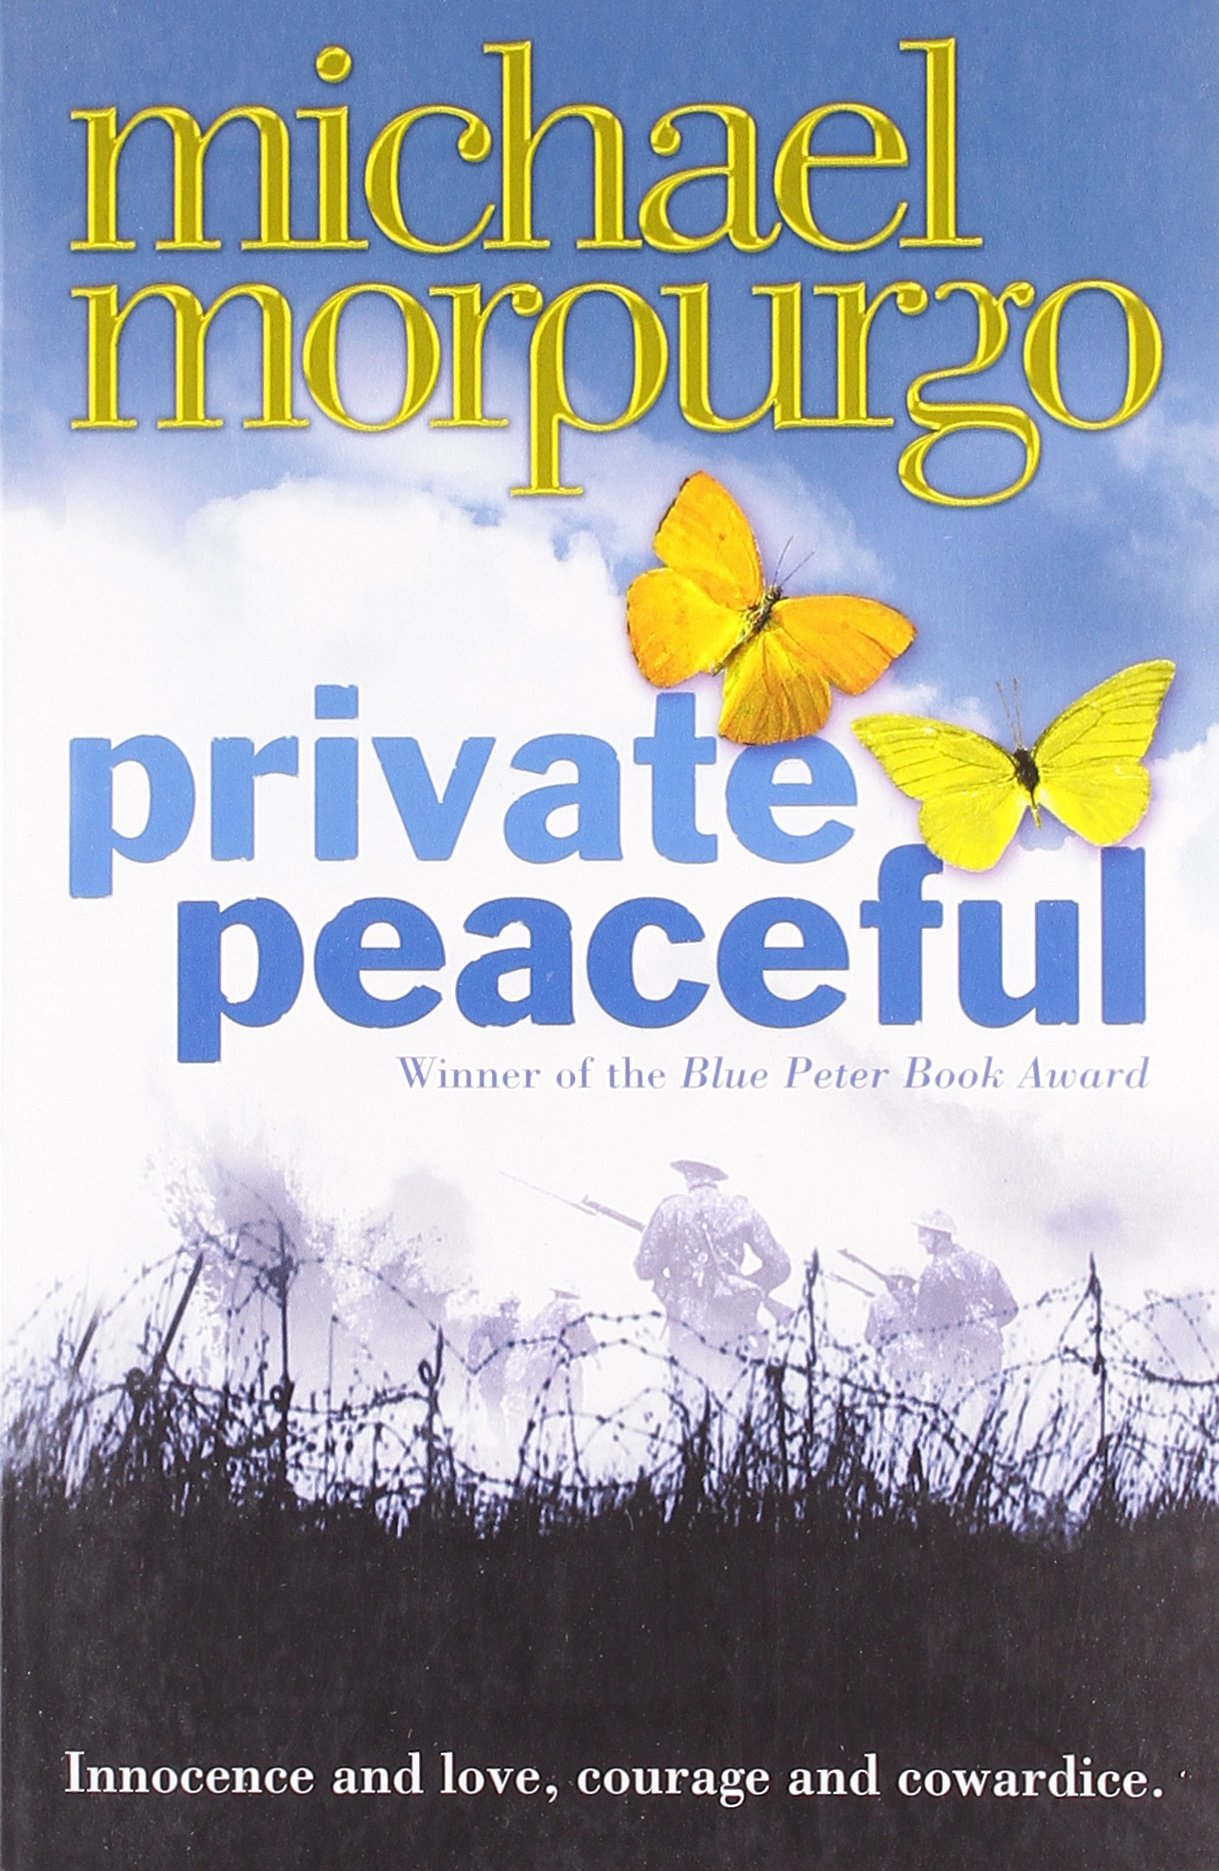 Children S Book Covers Without Titles : Private peaceful book pixshark images